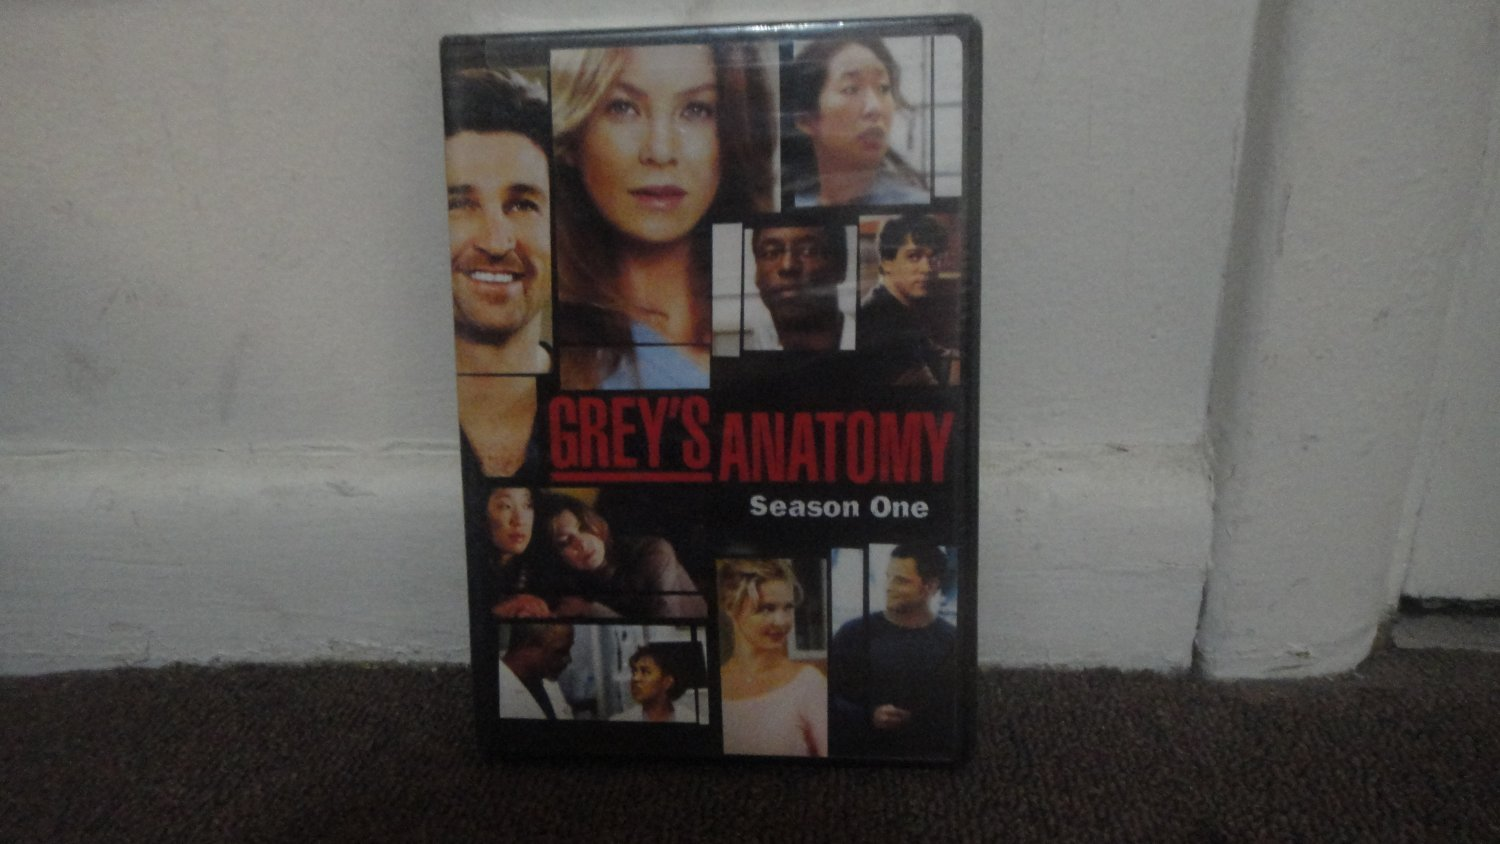 GREY'S ANATOMY - DVD SET: The 1st Season, Season 1, Opened, New. LOOK!!!